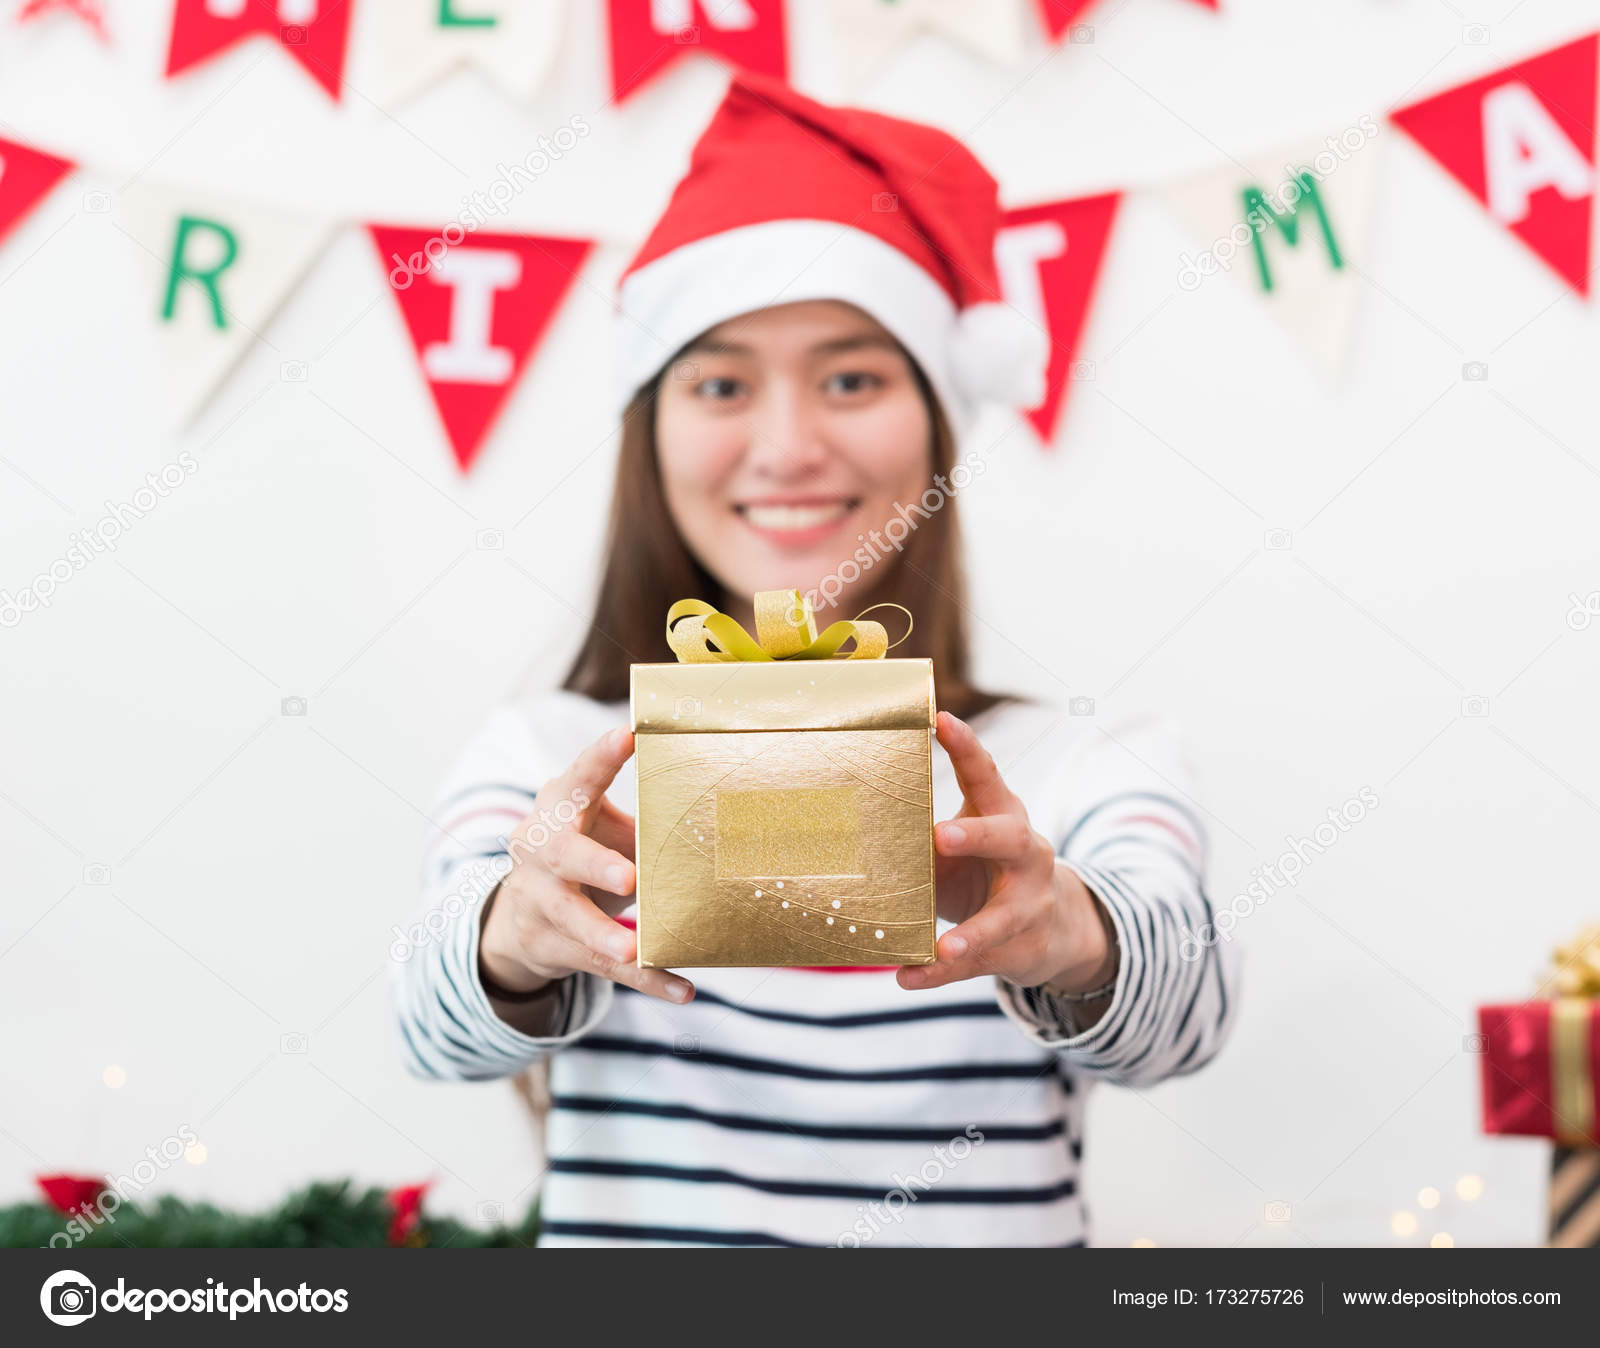 Agree, rather asian gift giving